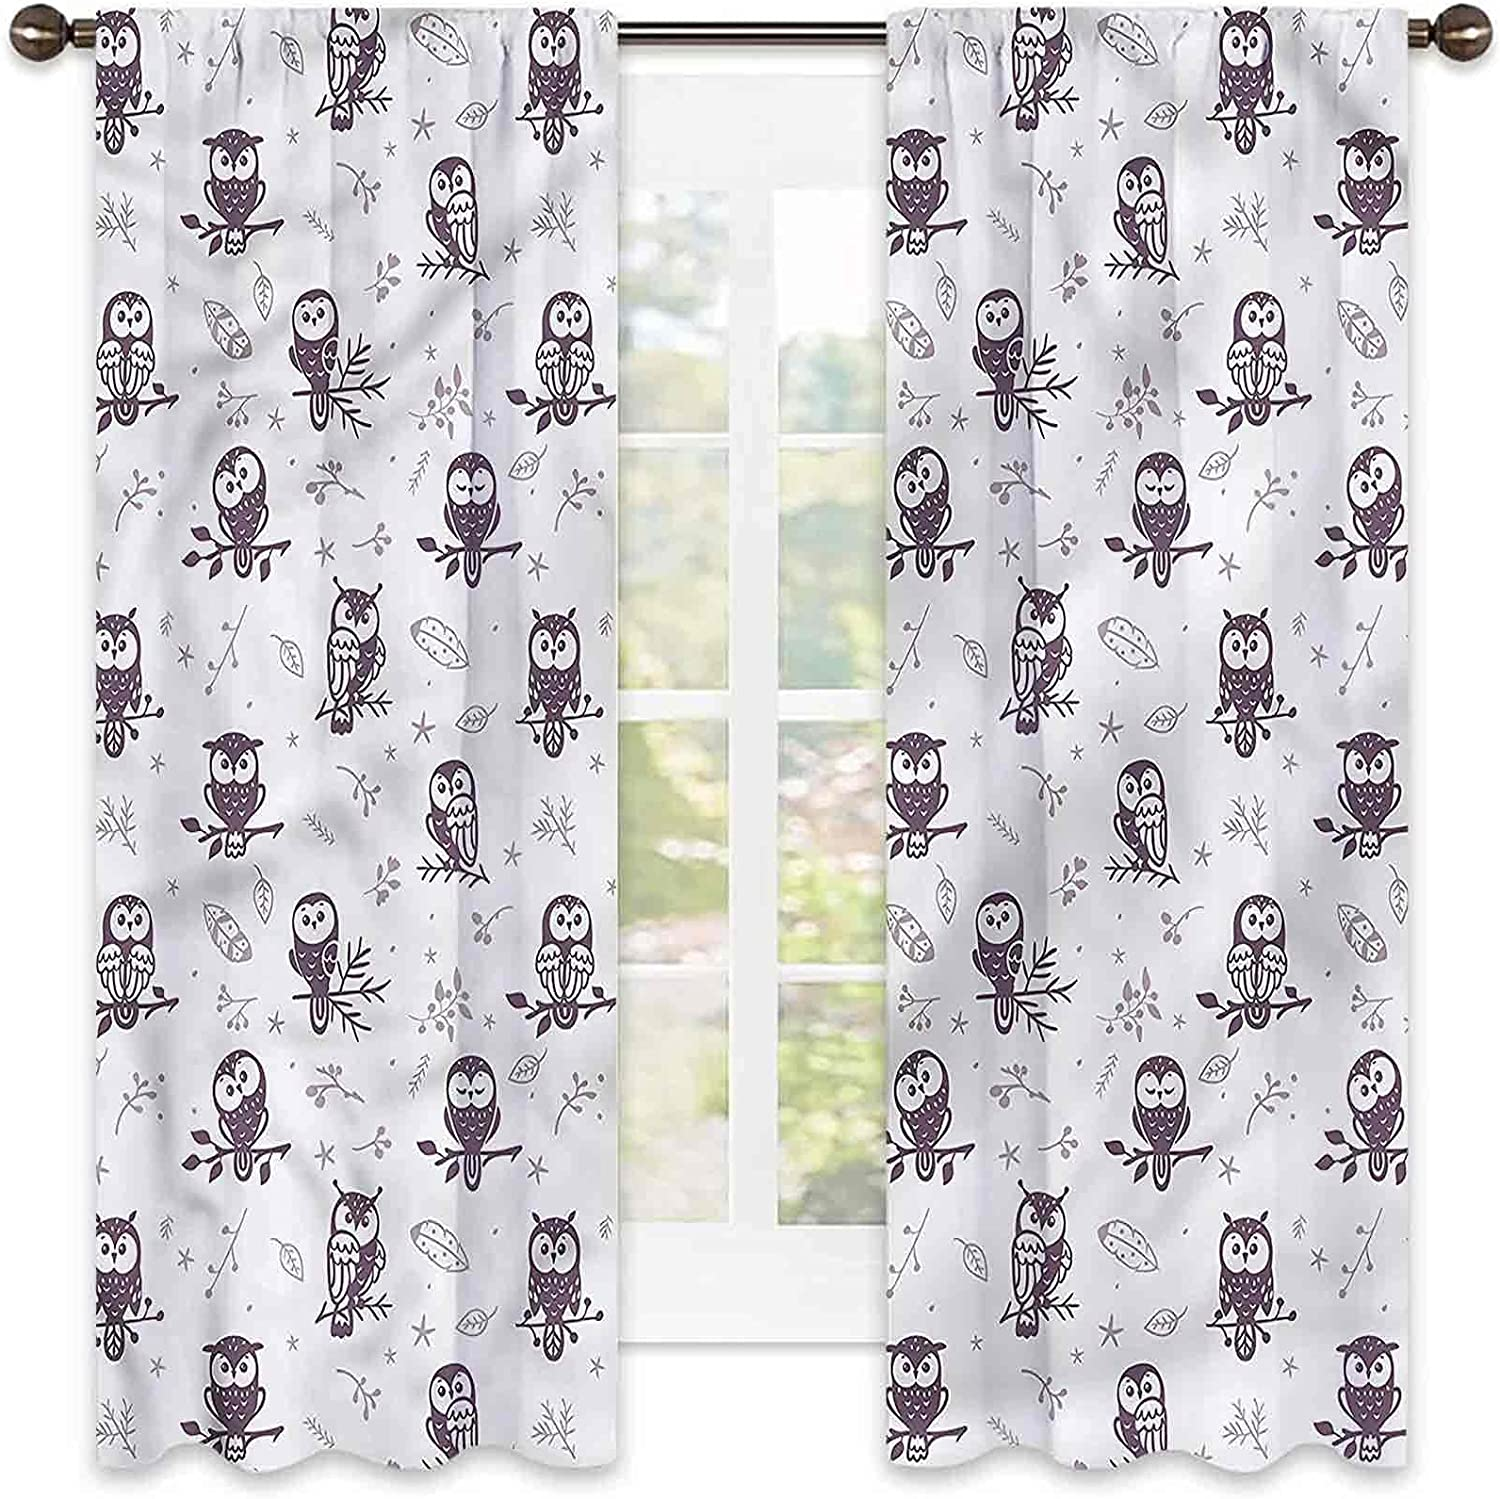 Doodle Rapid rise 90% Max 72% OFF Blackout Curtains Owls Rod-Sha Perching Branches on